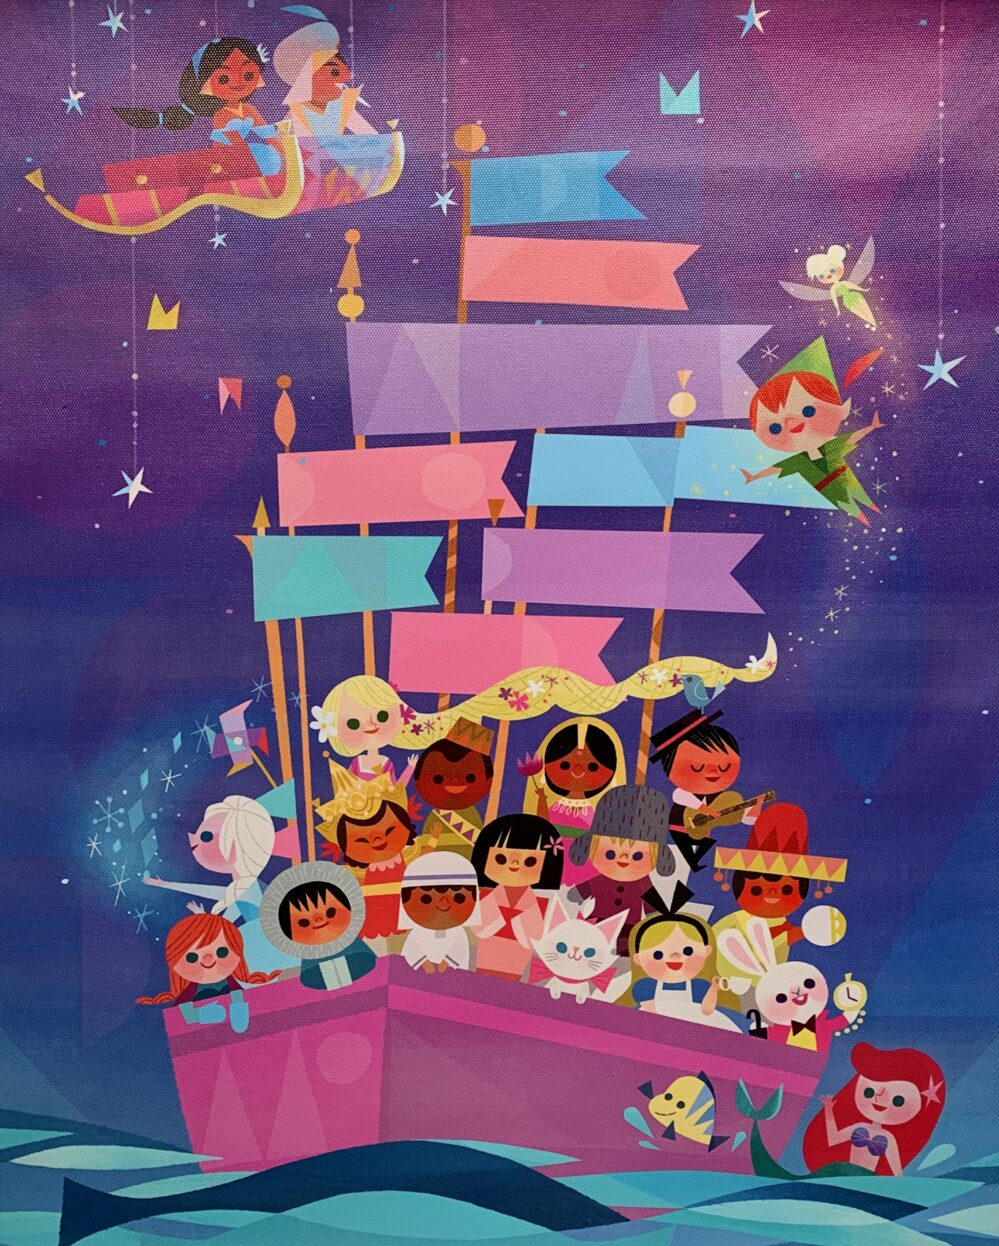 DISNEY IT'S A SMALL WORLD RIDE Art Giclee on Canvas by Joey Chou